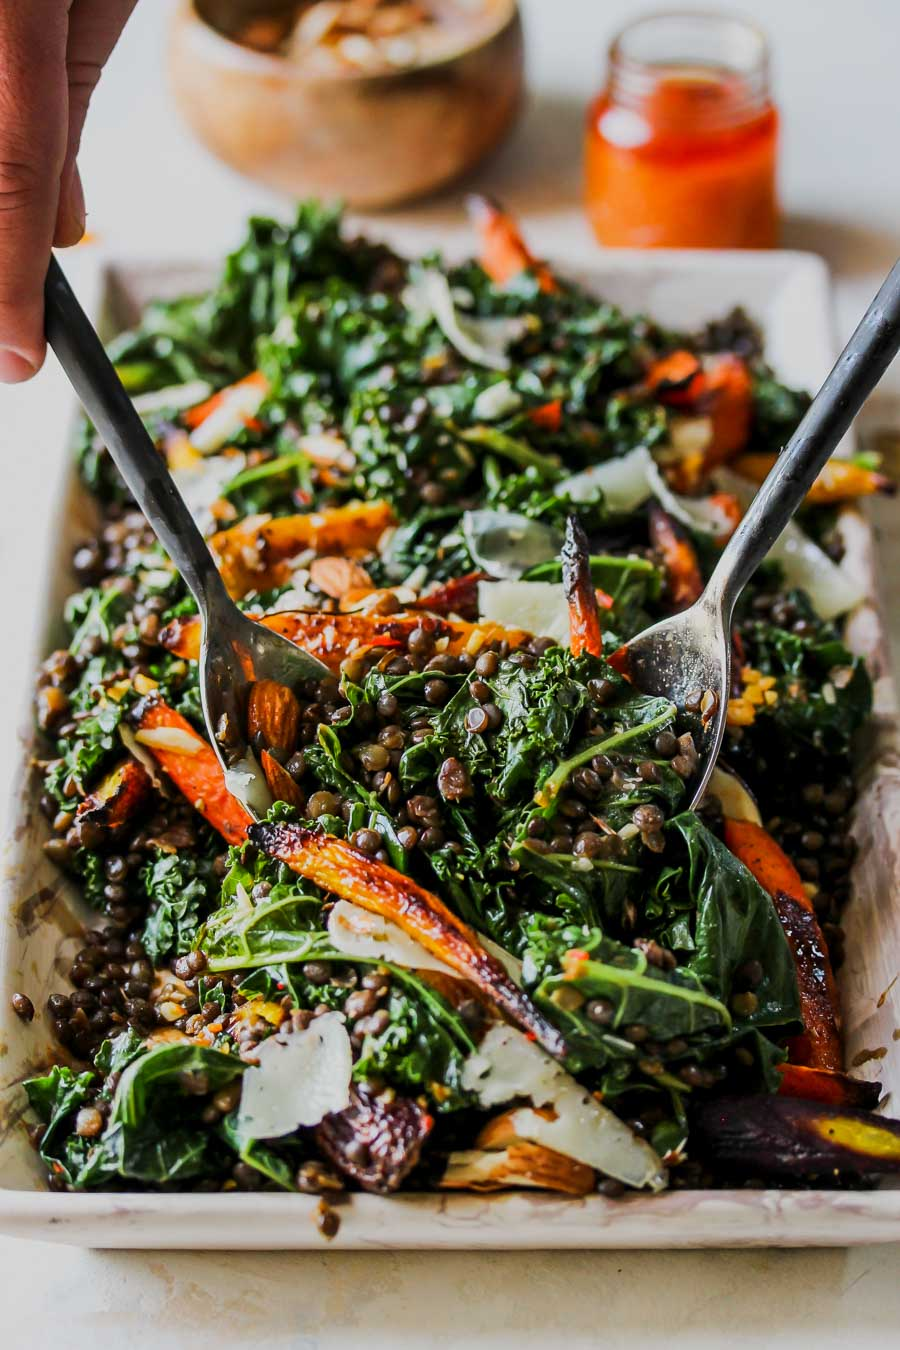 Warm Lentil and Kale Salad with Carrot-Harissa Dressing